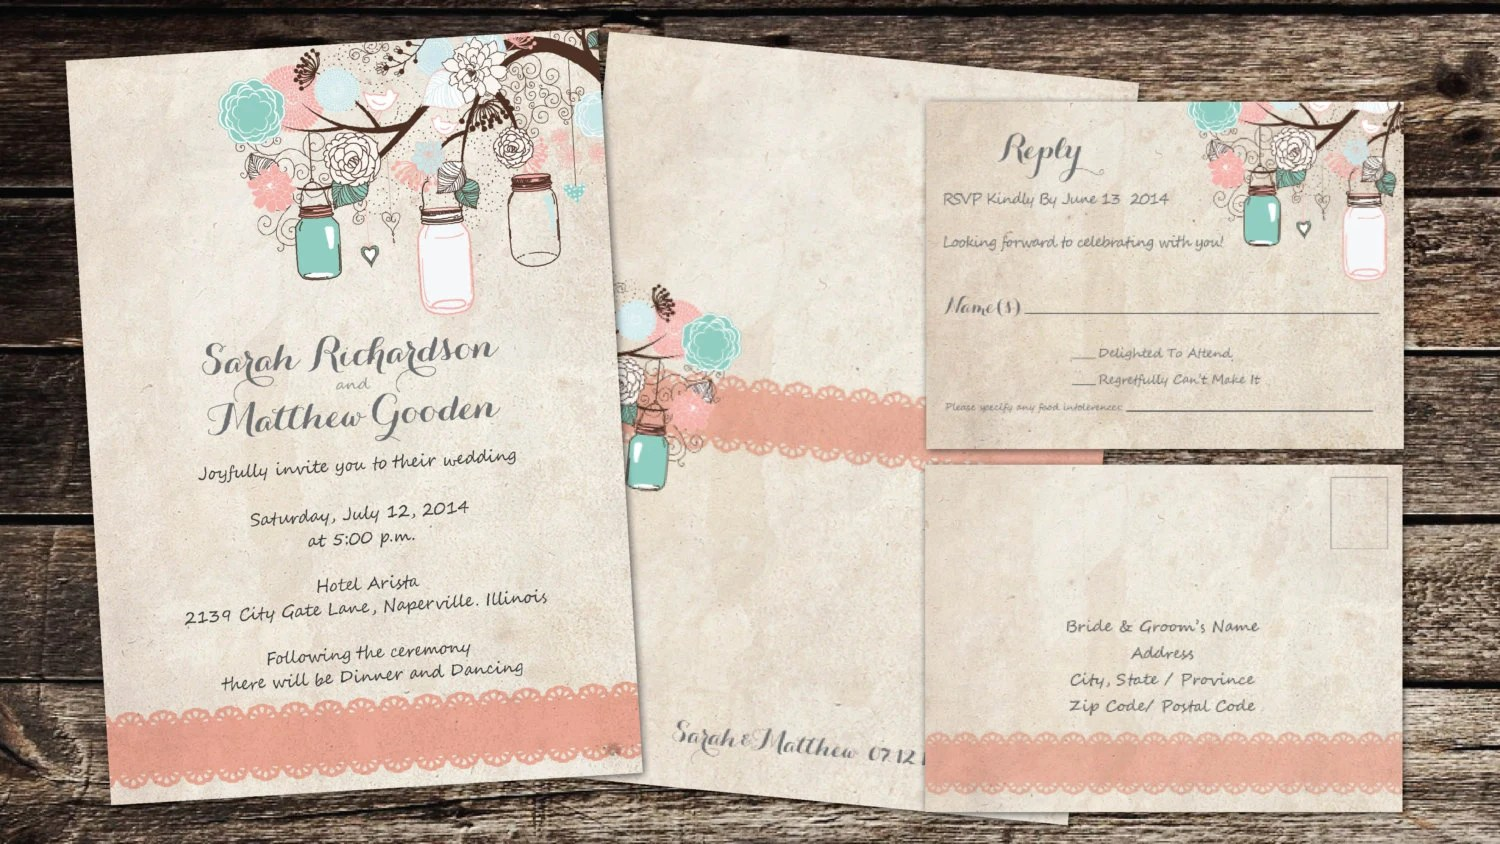 vintage peach wedding invitations tiffany blue wedding invitations peachcoral mason jars flowers u wedding invitations tiffany blue vintage accents